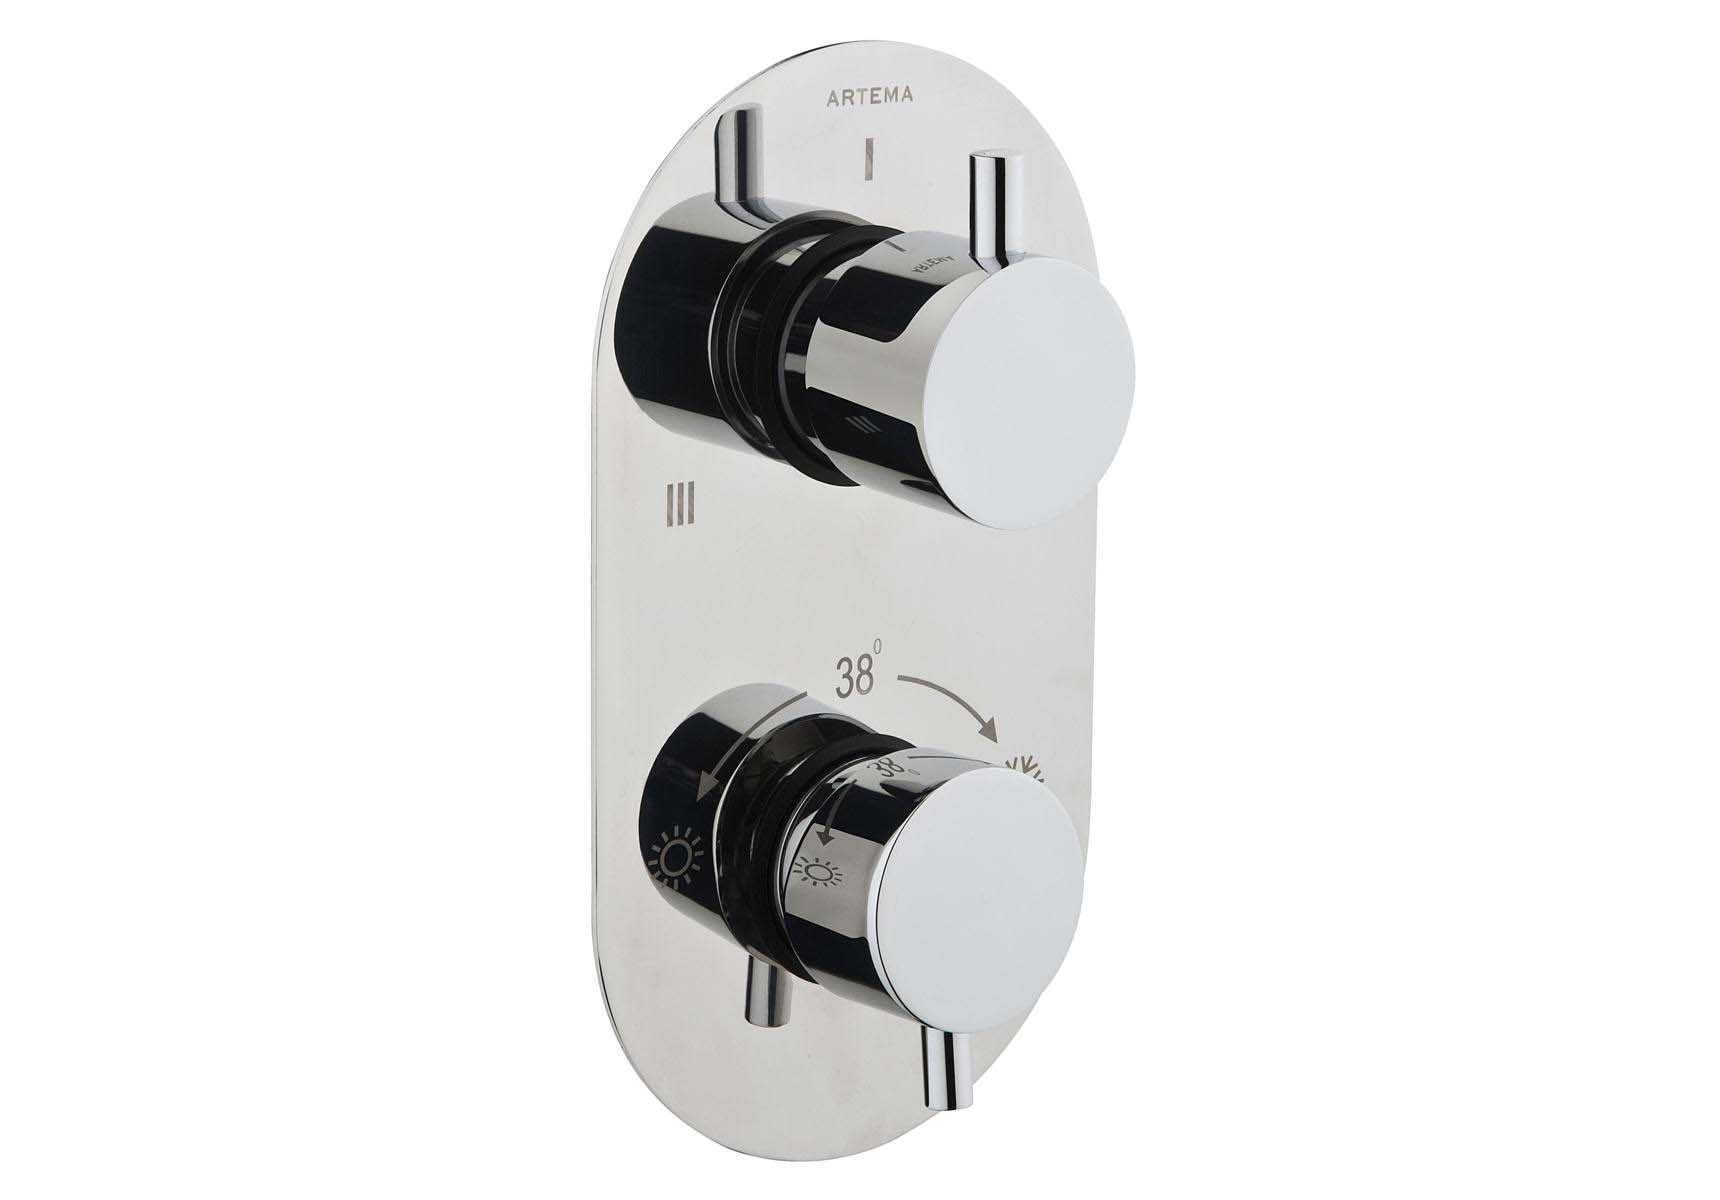 Aquatech Built-in Thermostatic Bath/Shower Mixer (180° Turn - 1+3 Way Diverter)